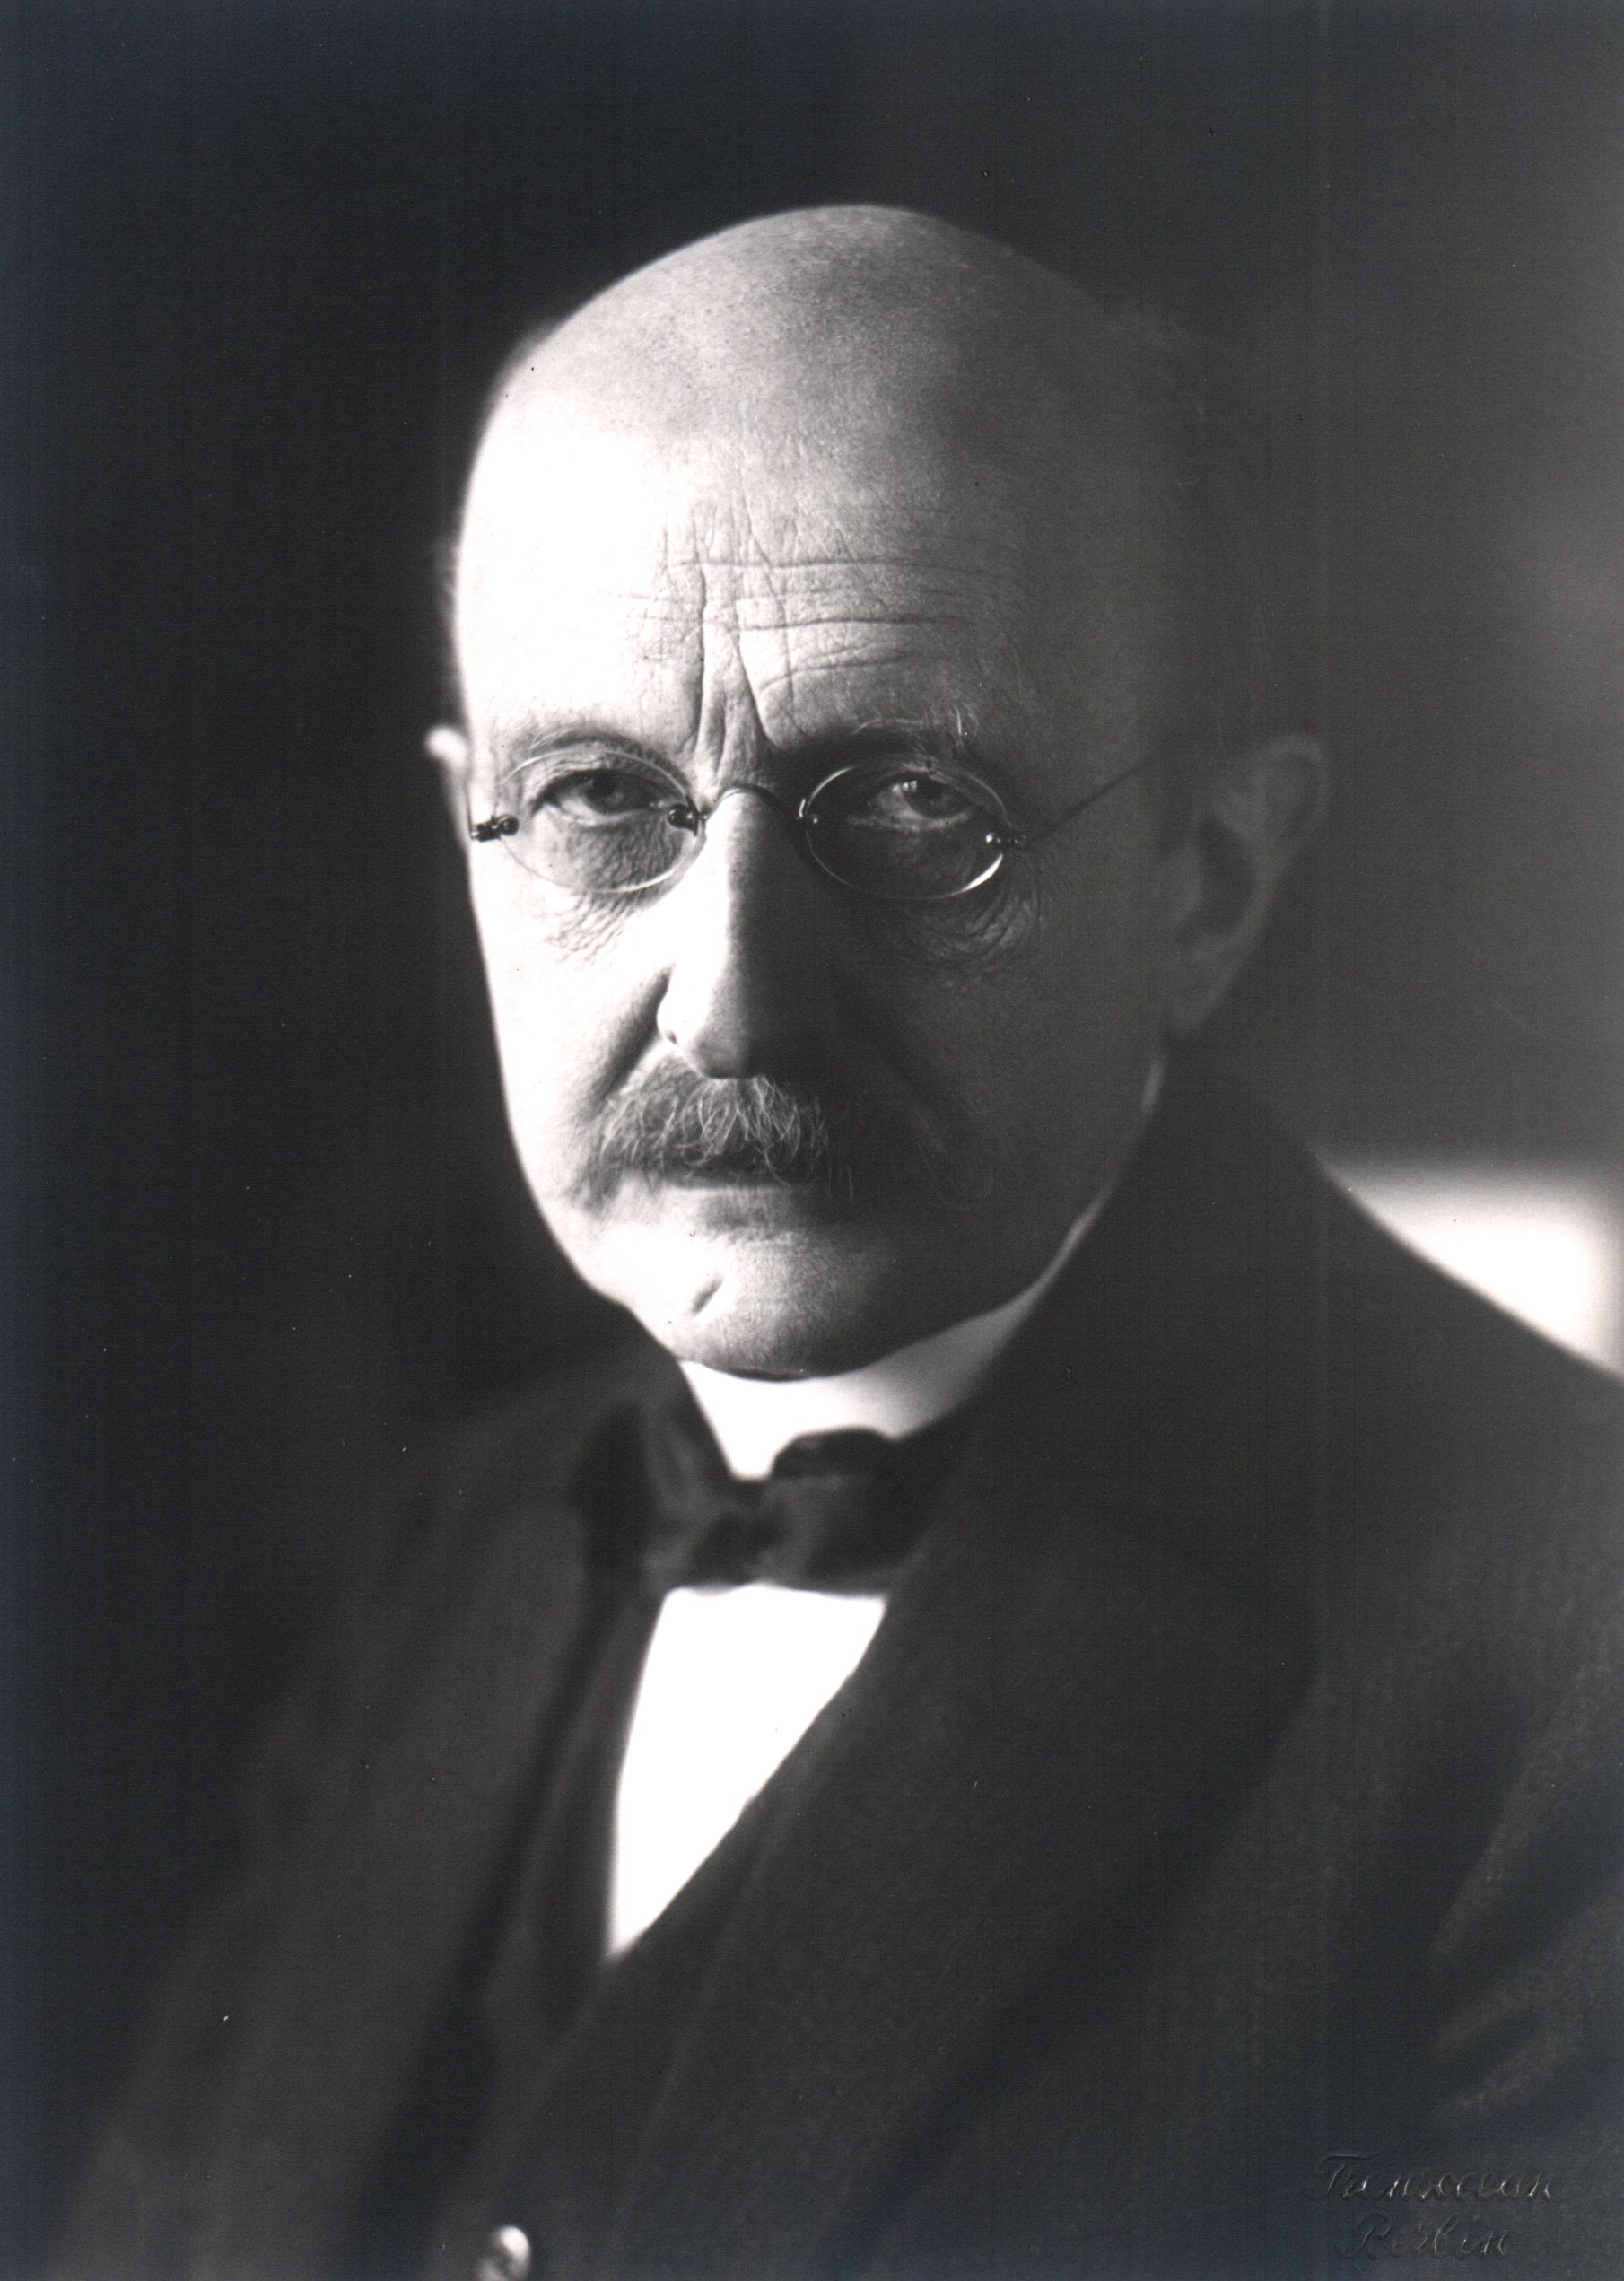 Max Planck - the inventor of the only unit of spacial measurement that makes any sense *as far as I'm aware*.